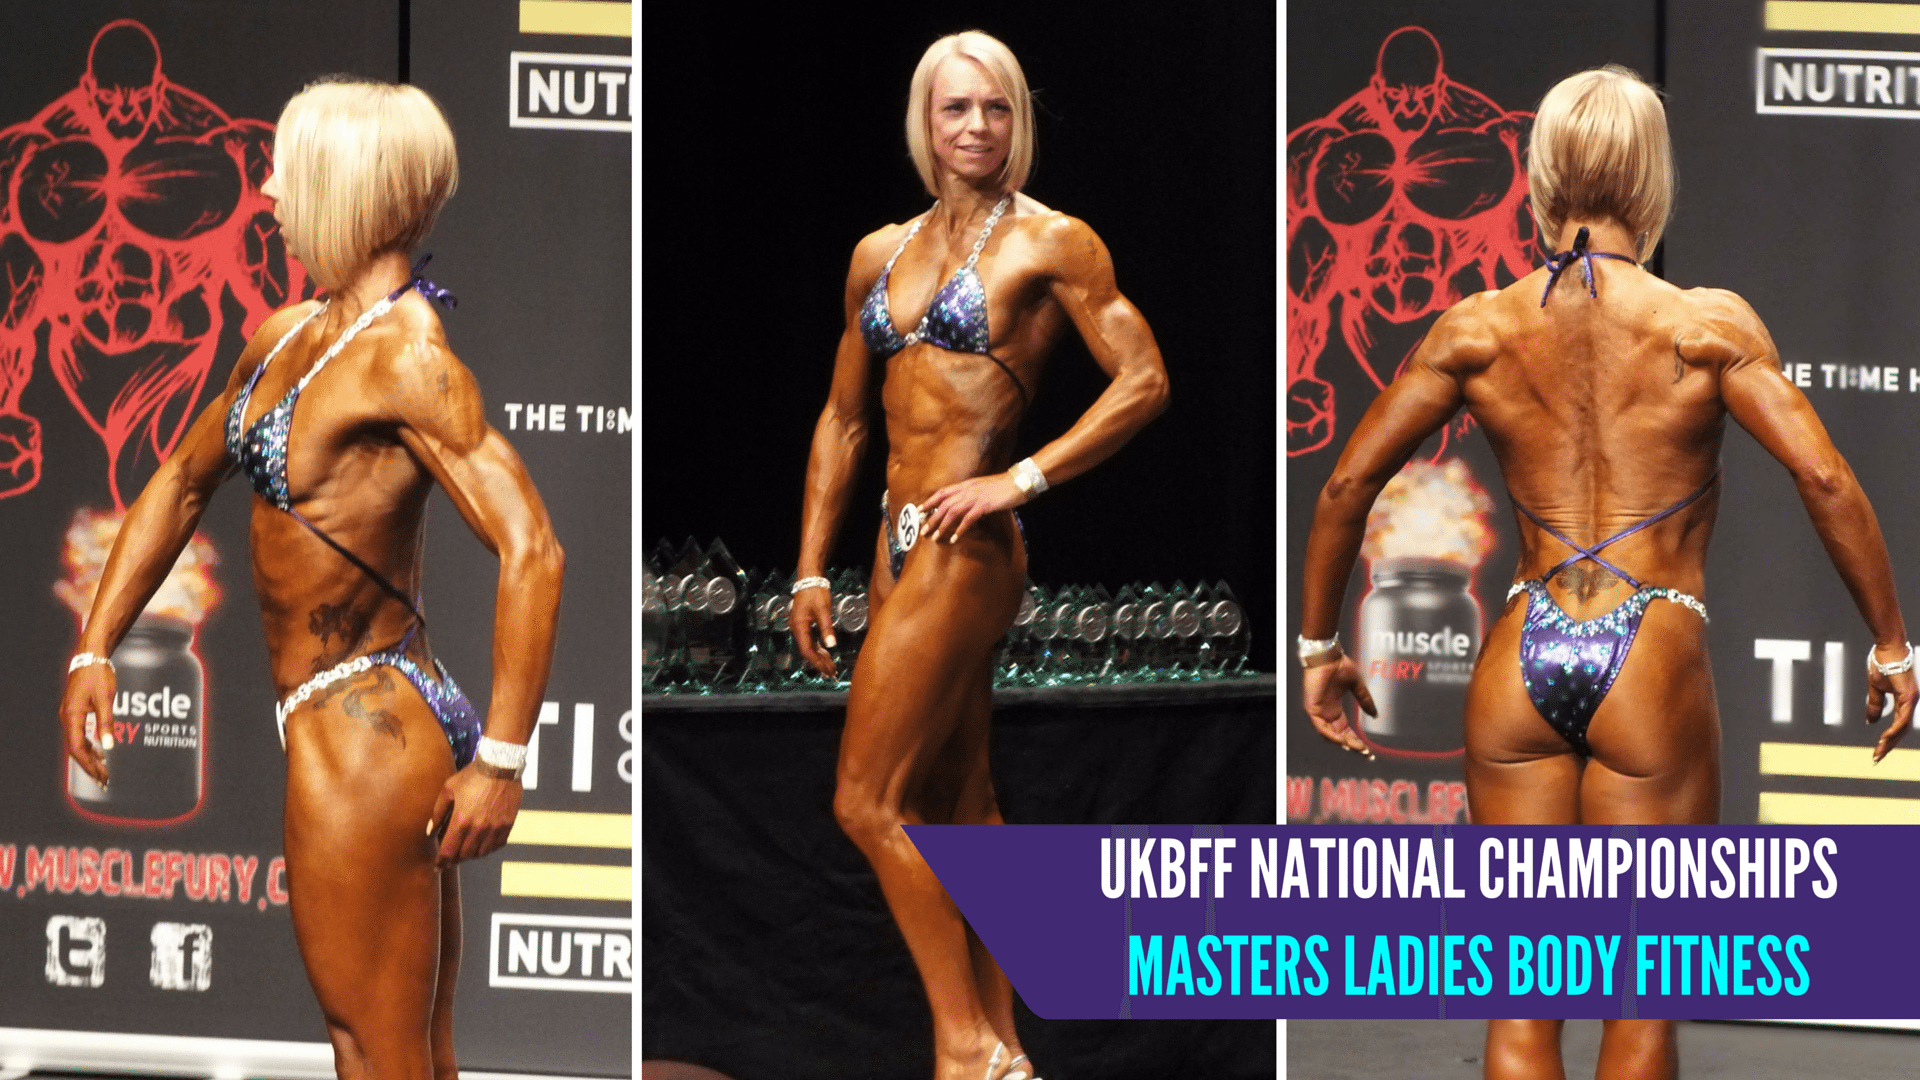 UKBFF Body Fitness Champion